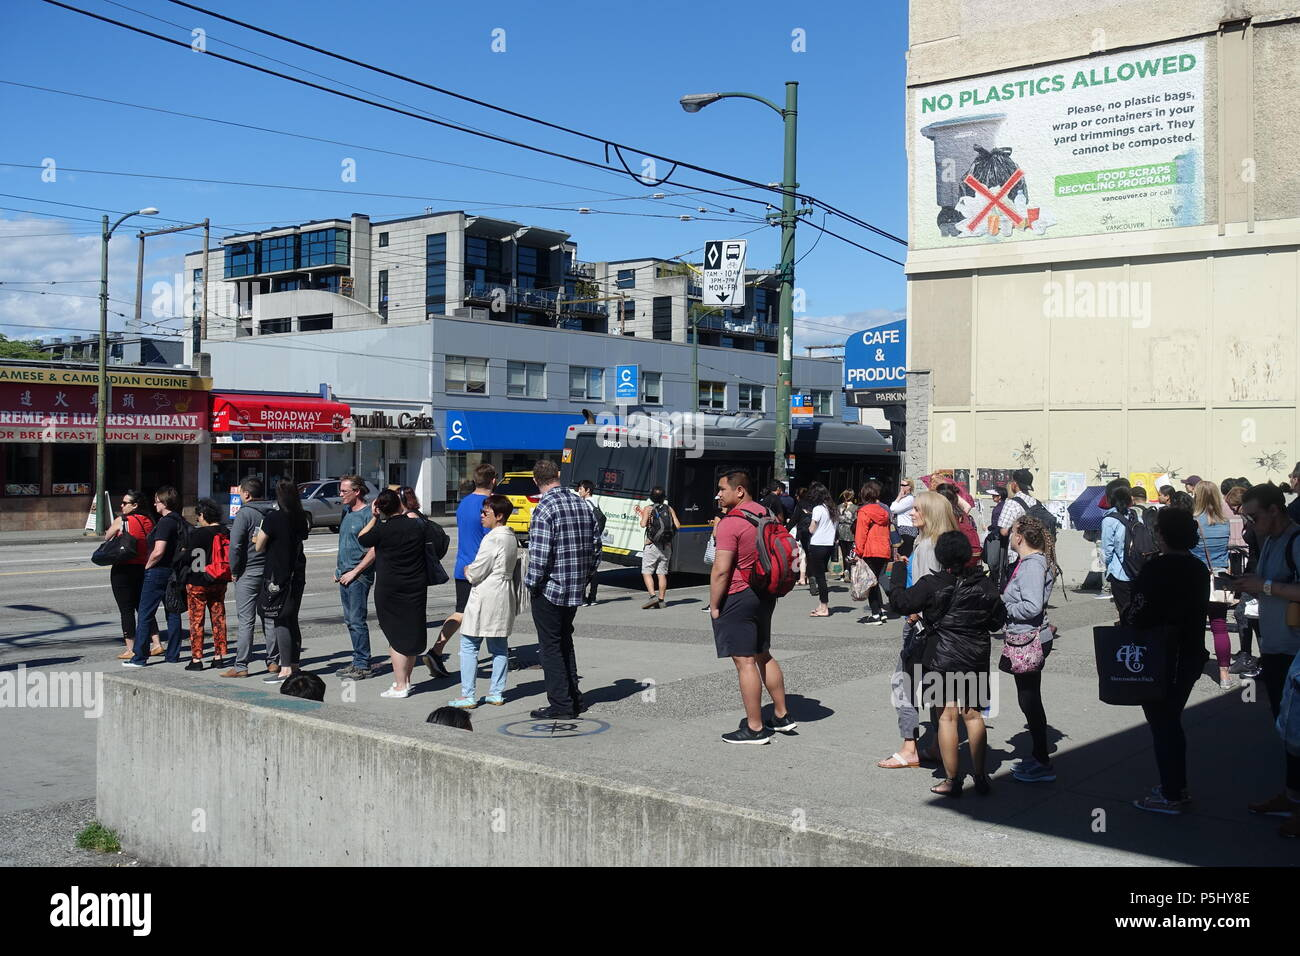 People Line Up In The Bus Stop 99 B Vancouver BC Canada